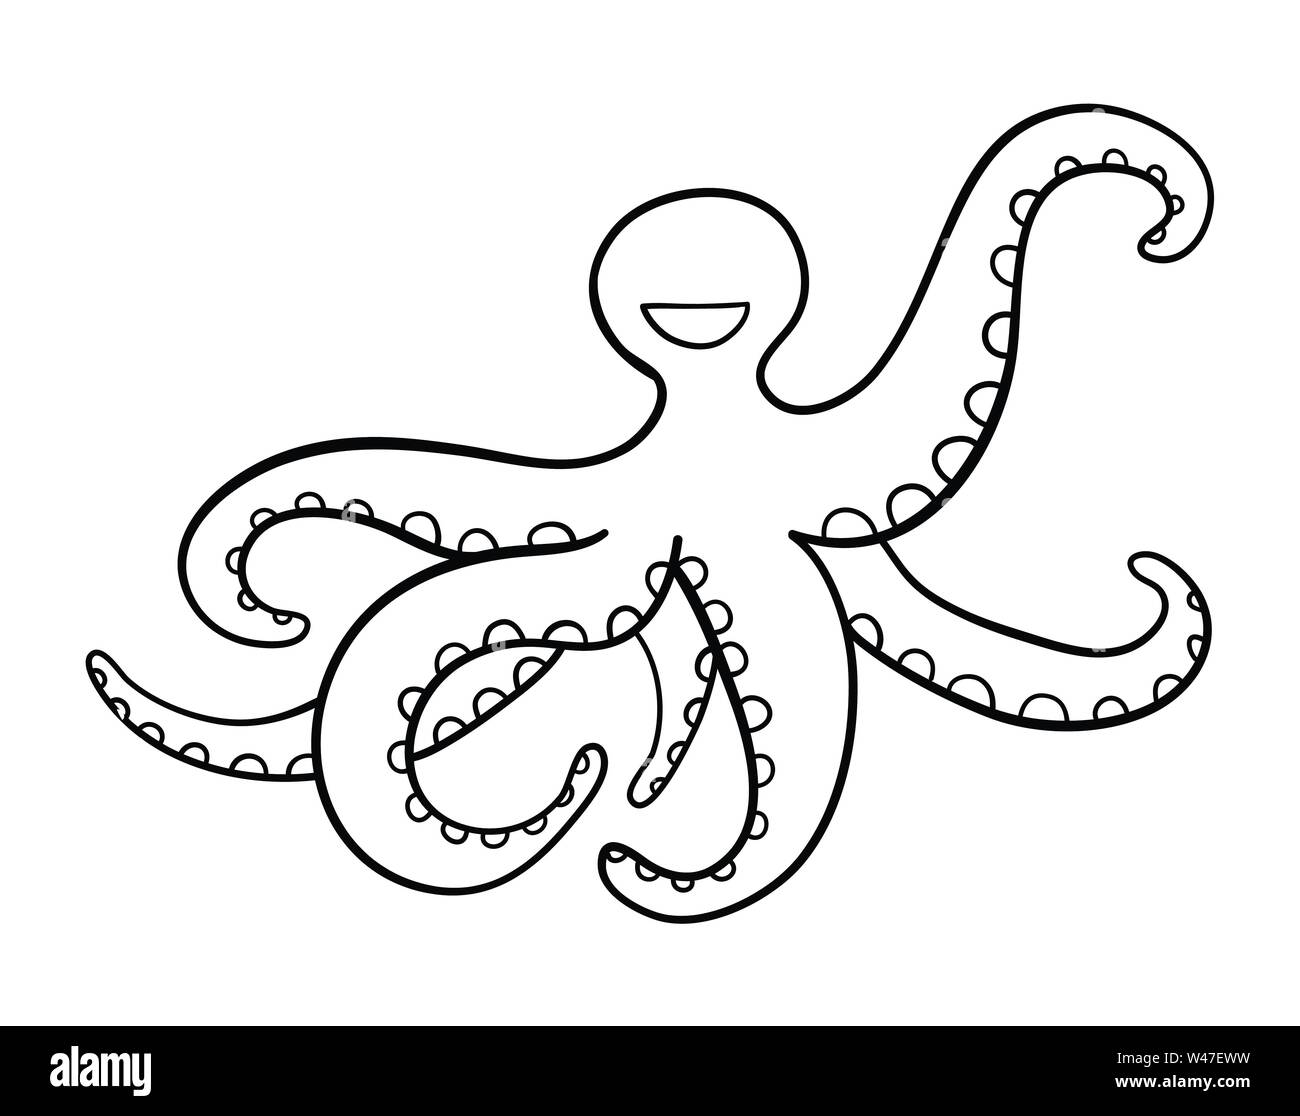 Vector hand-drawn illustration of blue octopus. Black outlines and white background. - Stock Image